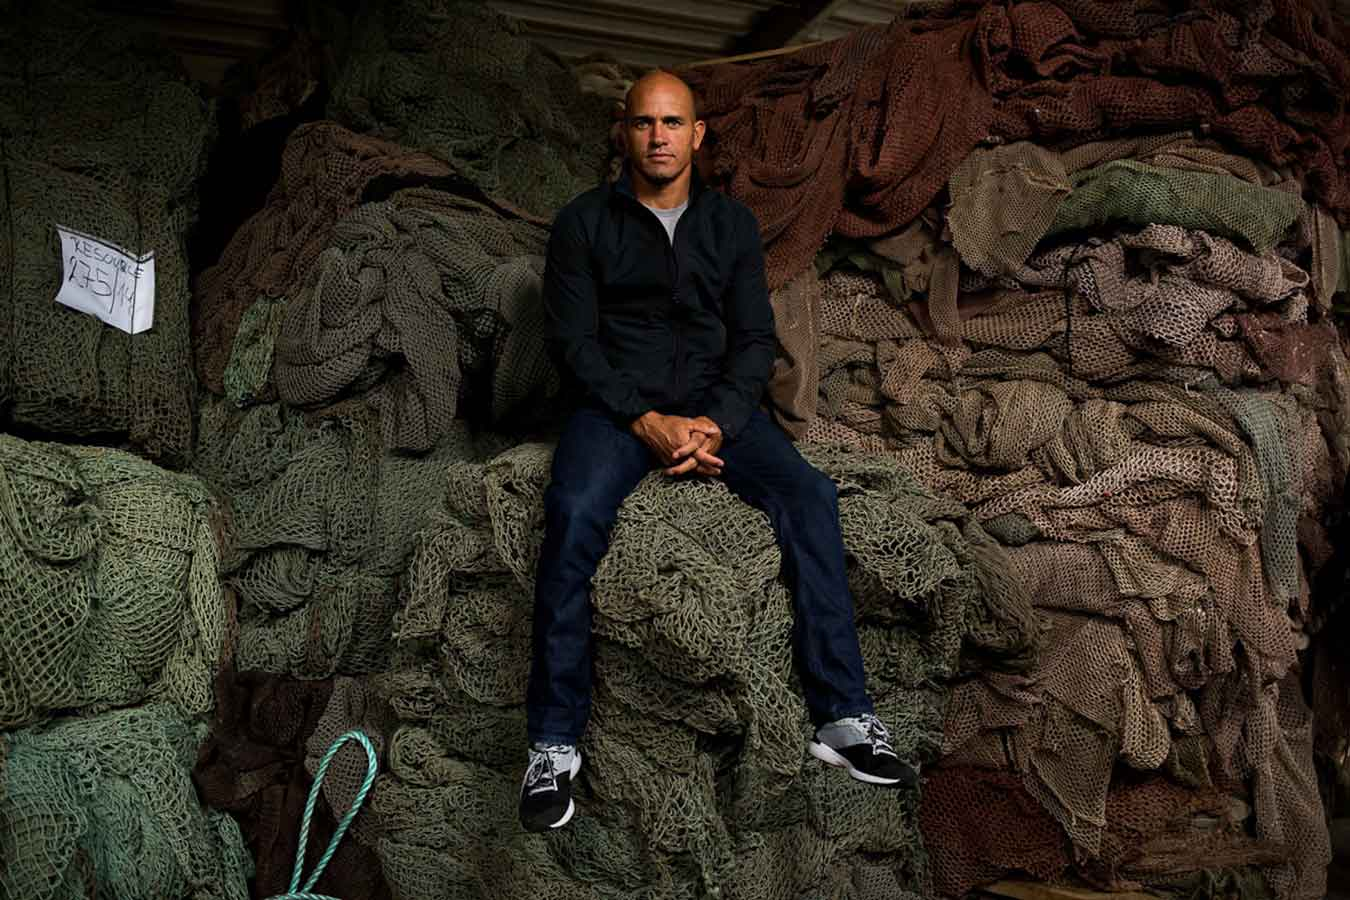 Kelly Slater sits on top of recycled fishing nets on a factory visit in Slovenia. Photo: Todd Glaser